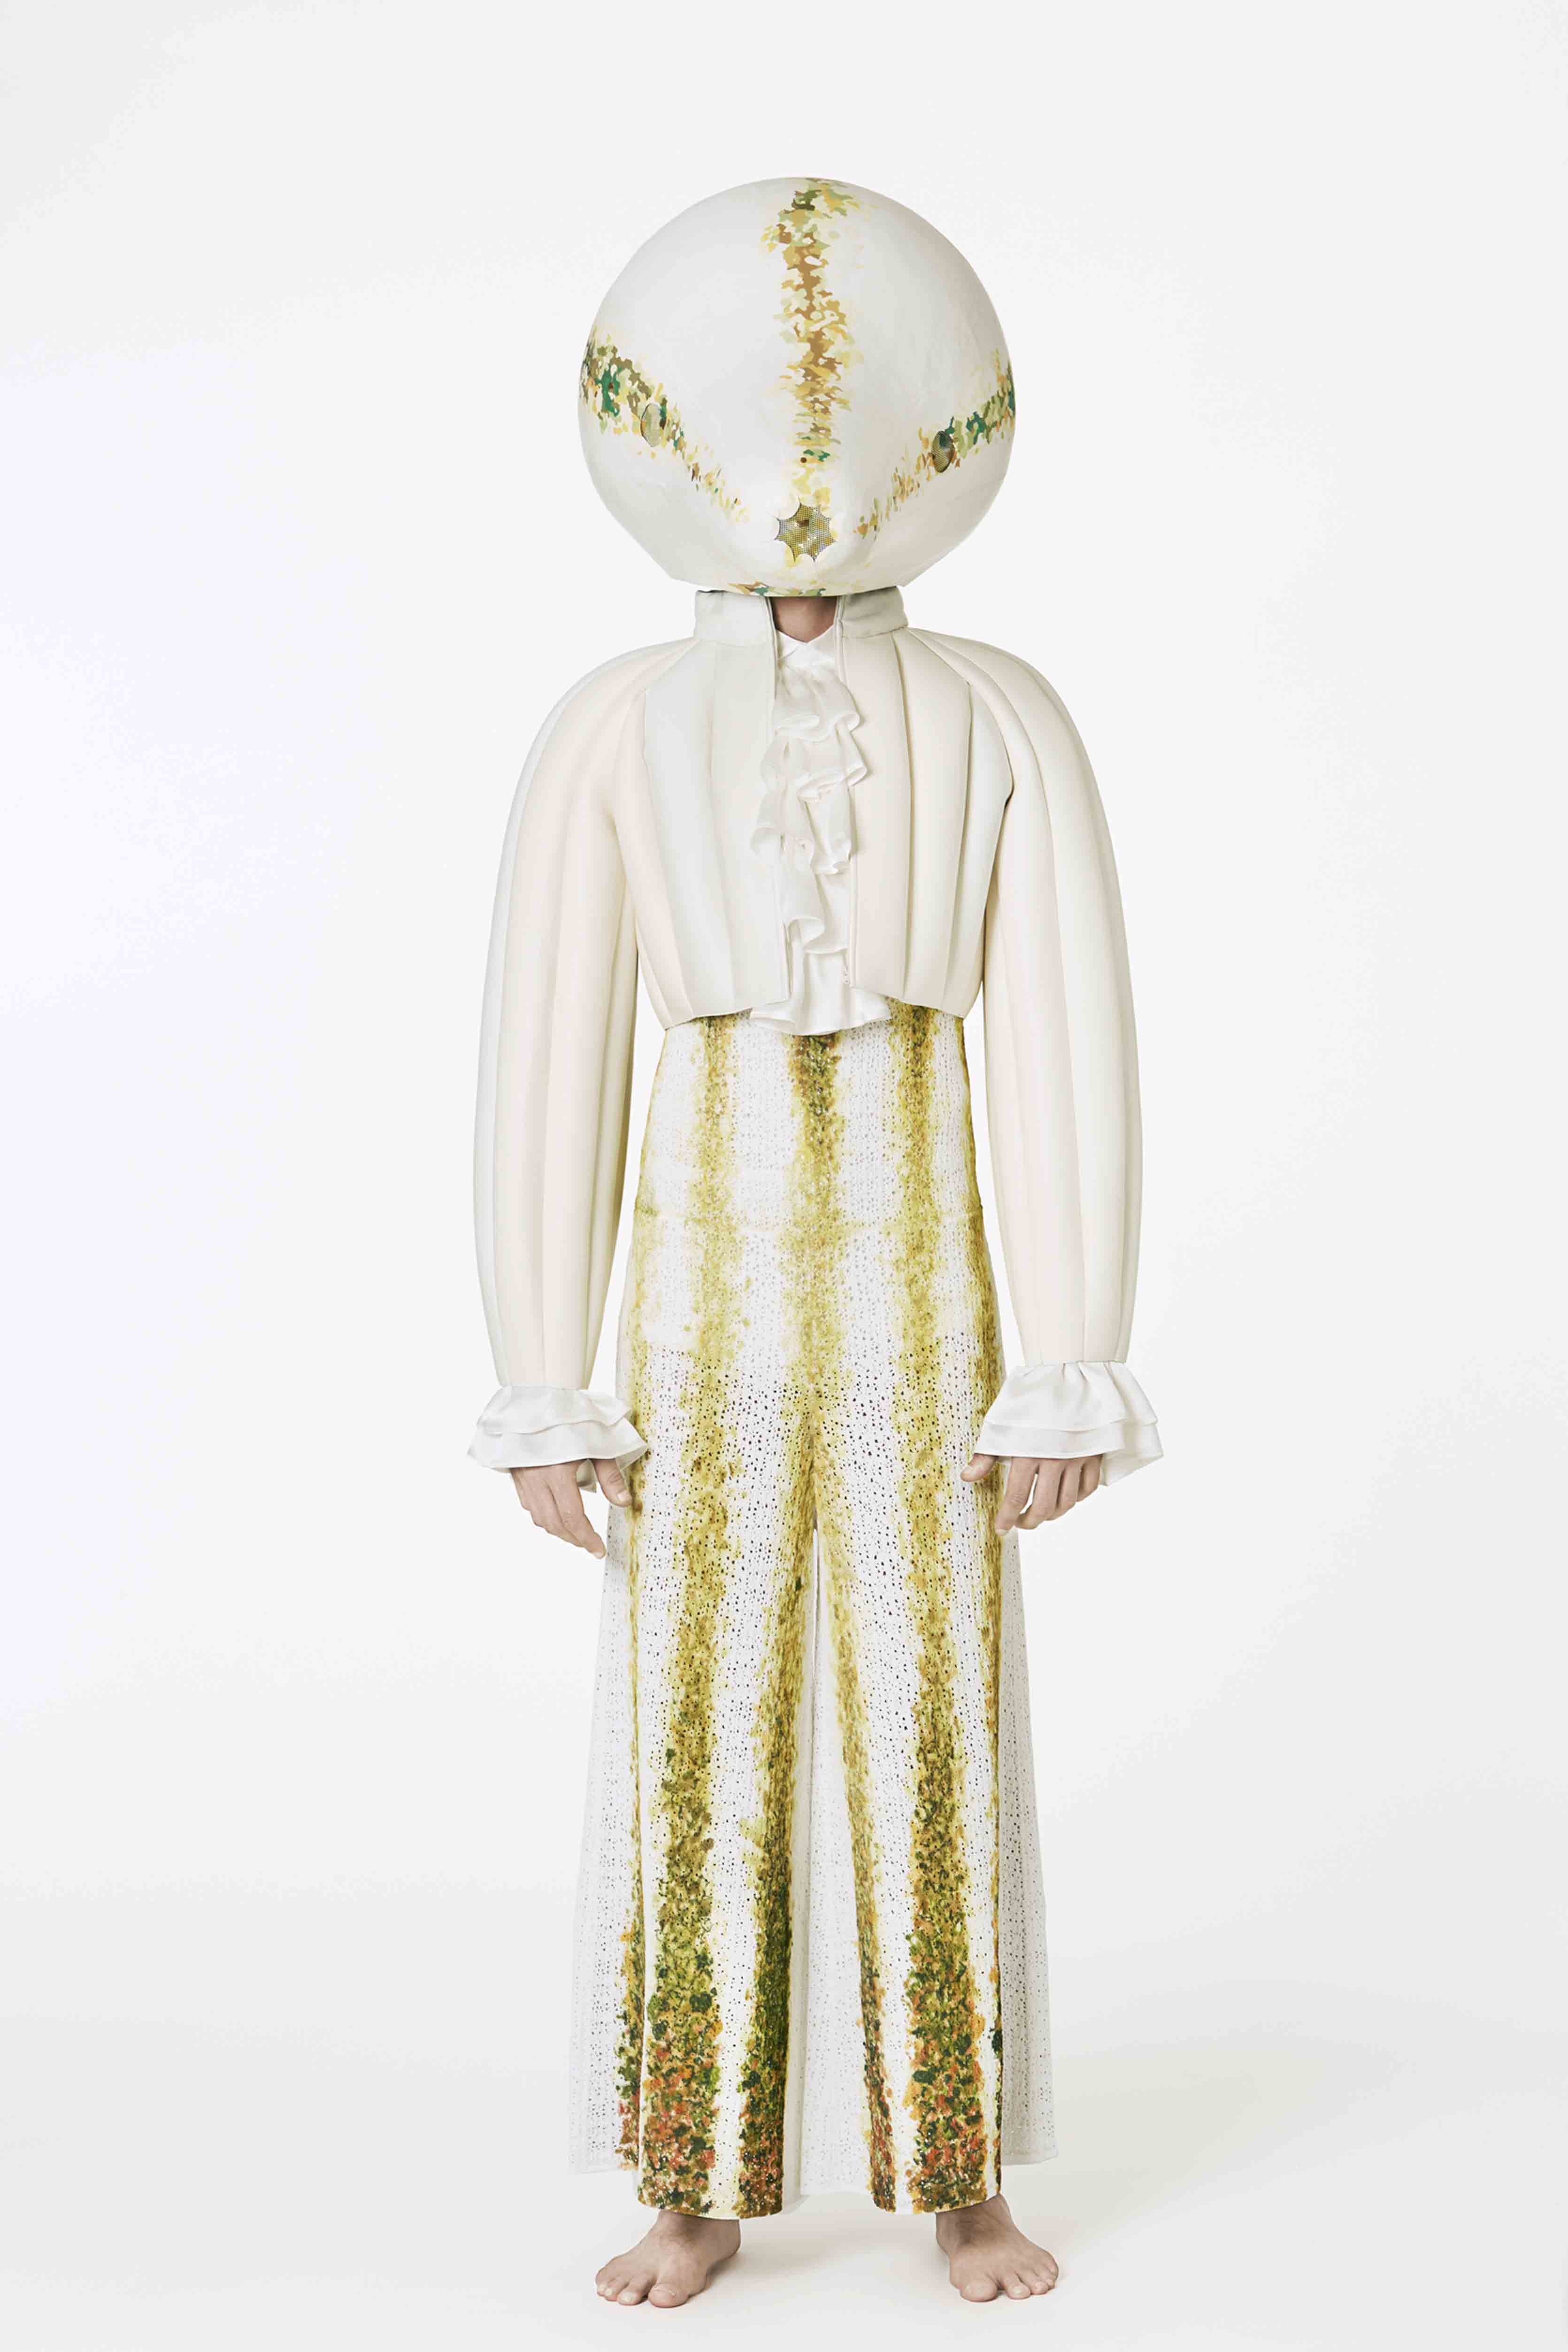 Loewe - Fiber glass head covered in white hand painted napa. White leather bolero.  Tracksuit in white knit with hand painted squash texture.